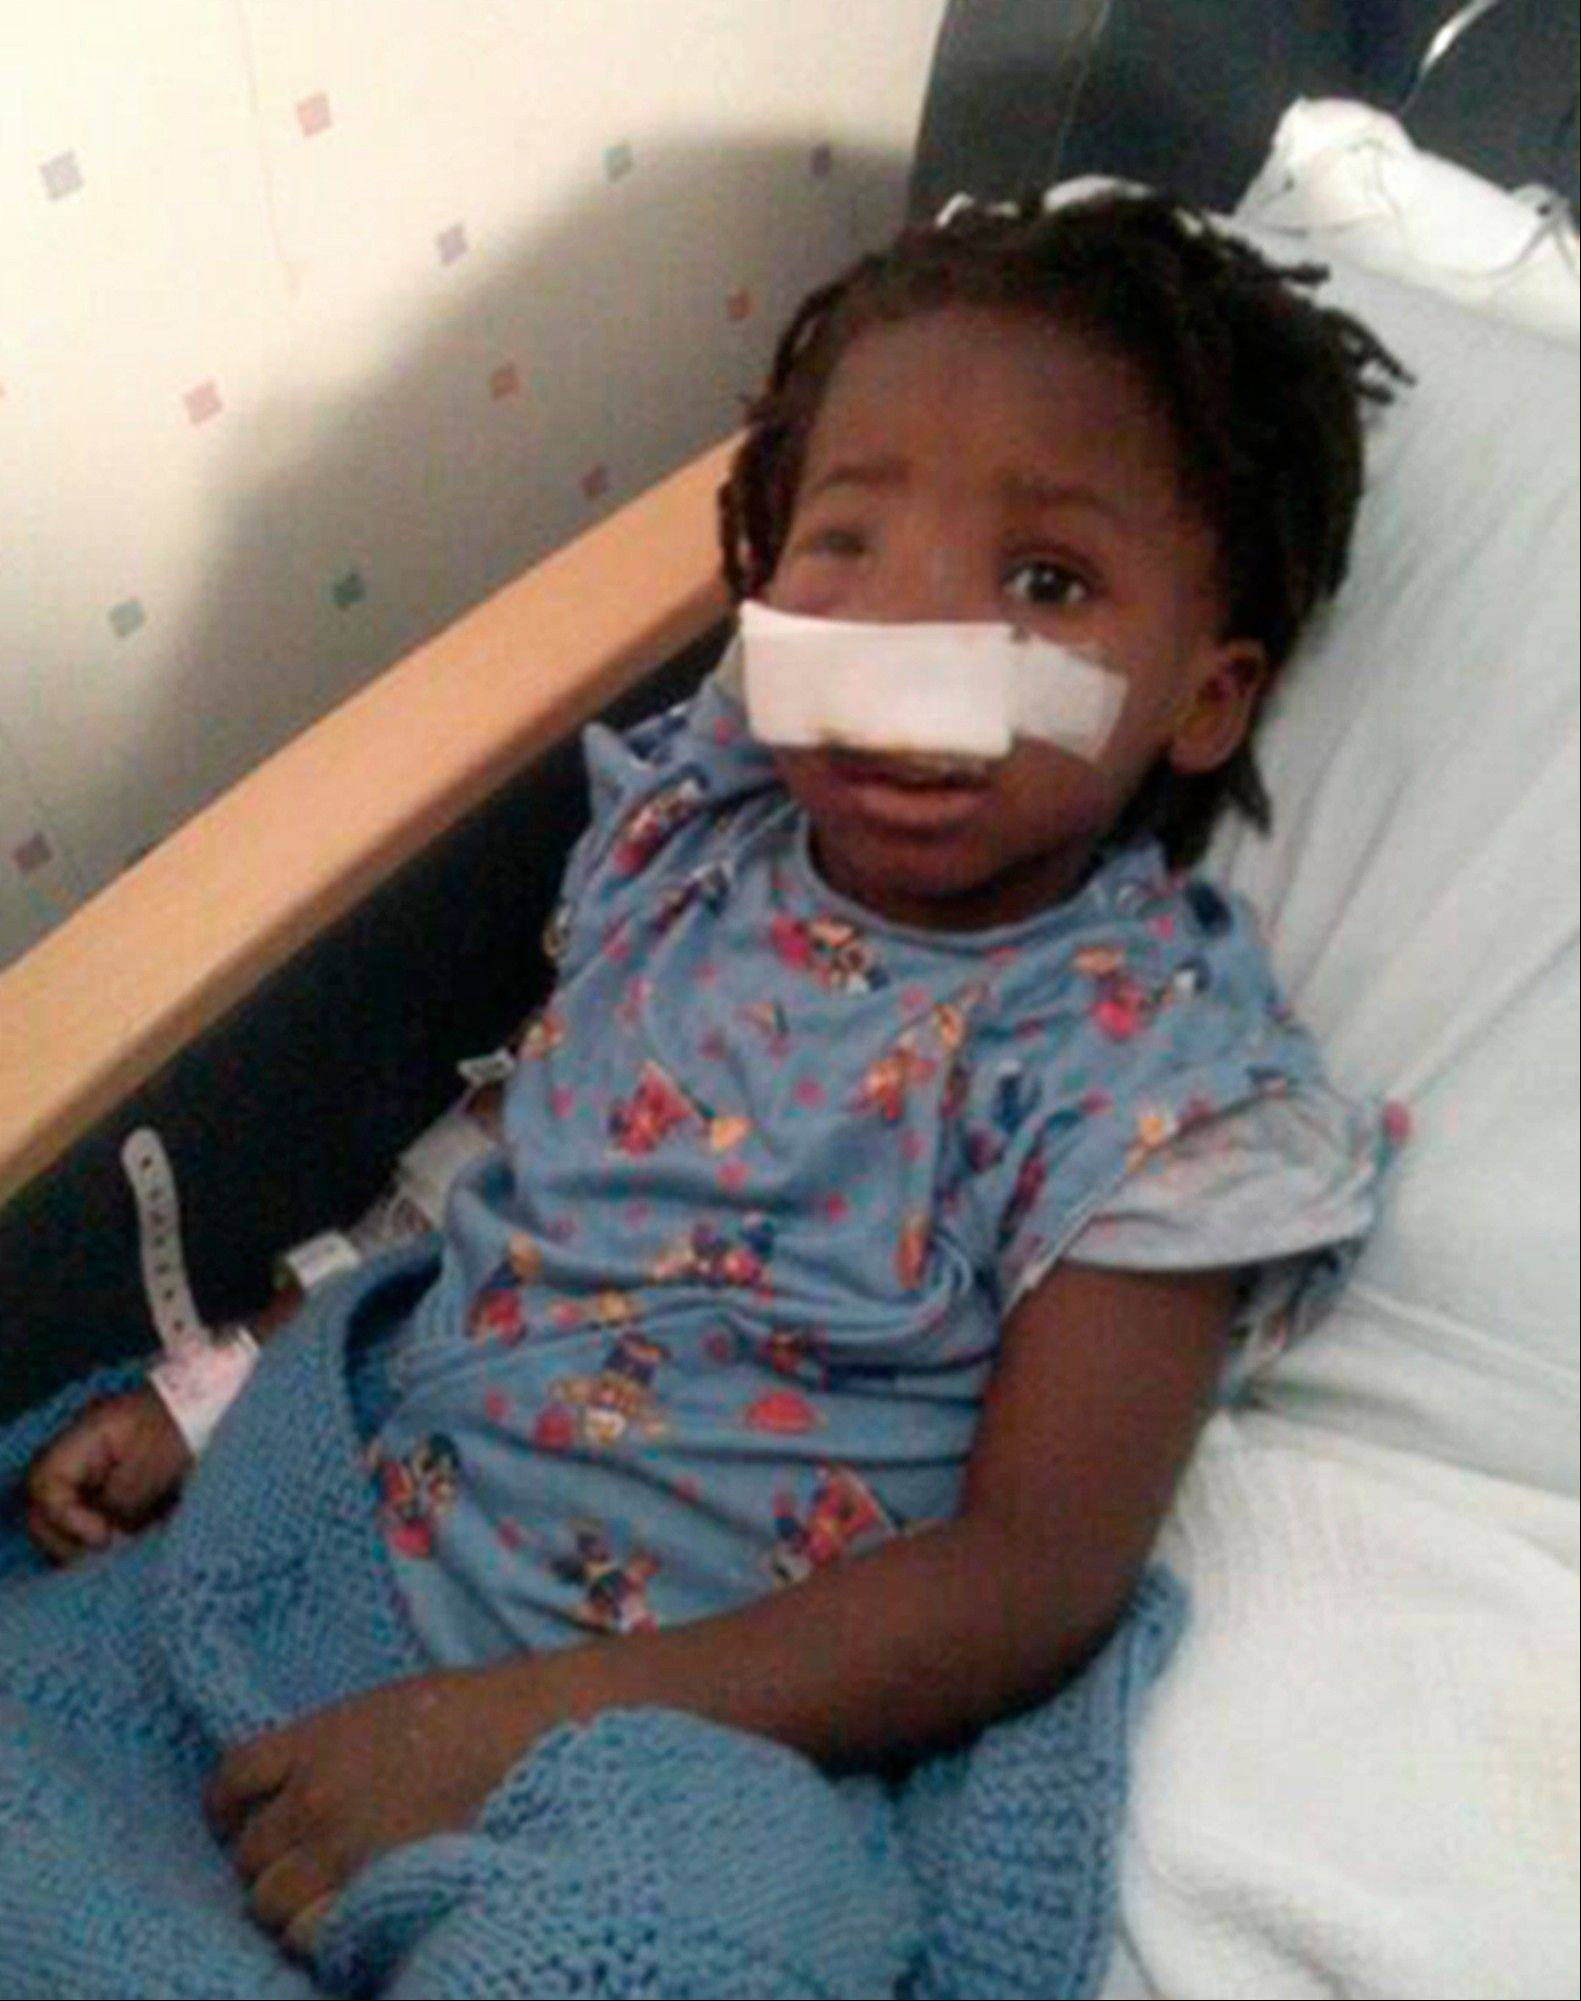 This family handout photo shows 3-year-old Deonta Howard recovering from a gunshot wound Monday at Mt. Sinai Hospital in Chicago. The boy was among 13 people shot Thursday night at Cornell Square Park on Chicago's Southwest Side.